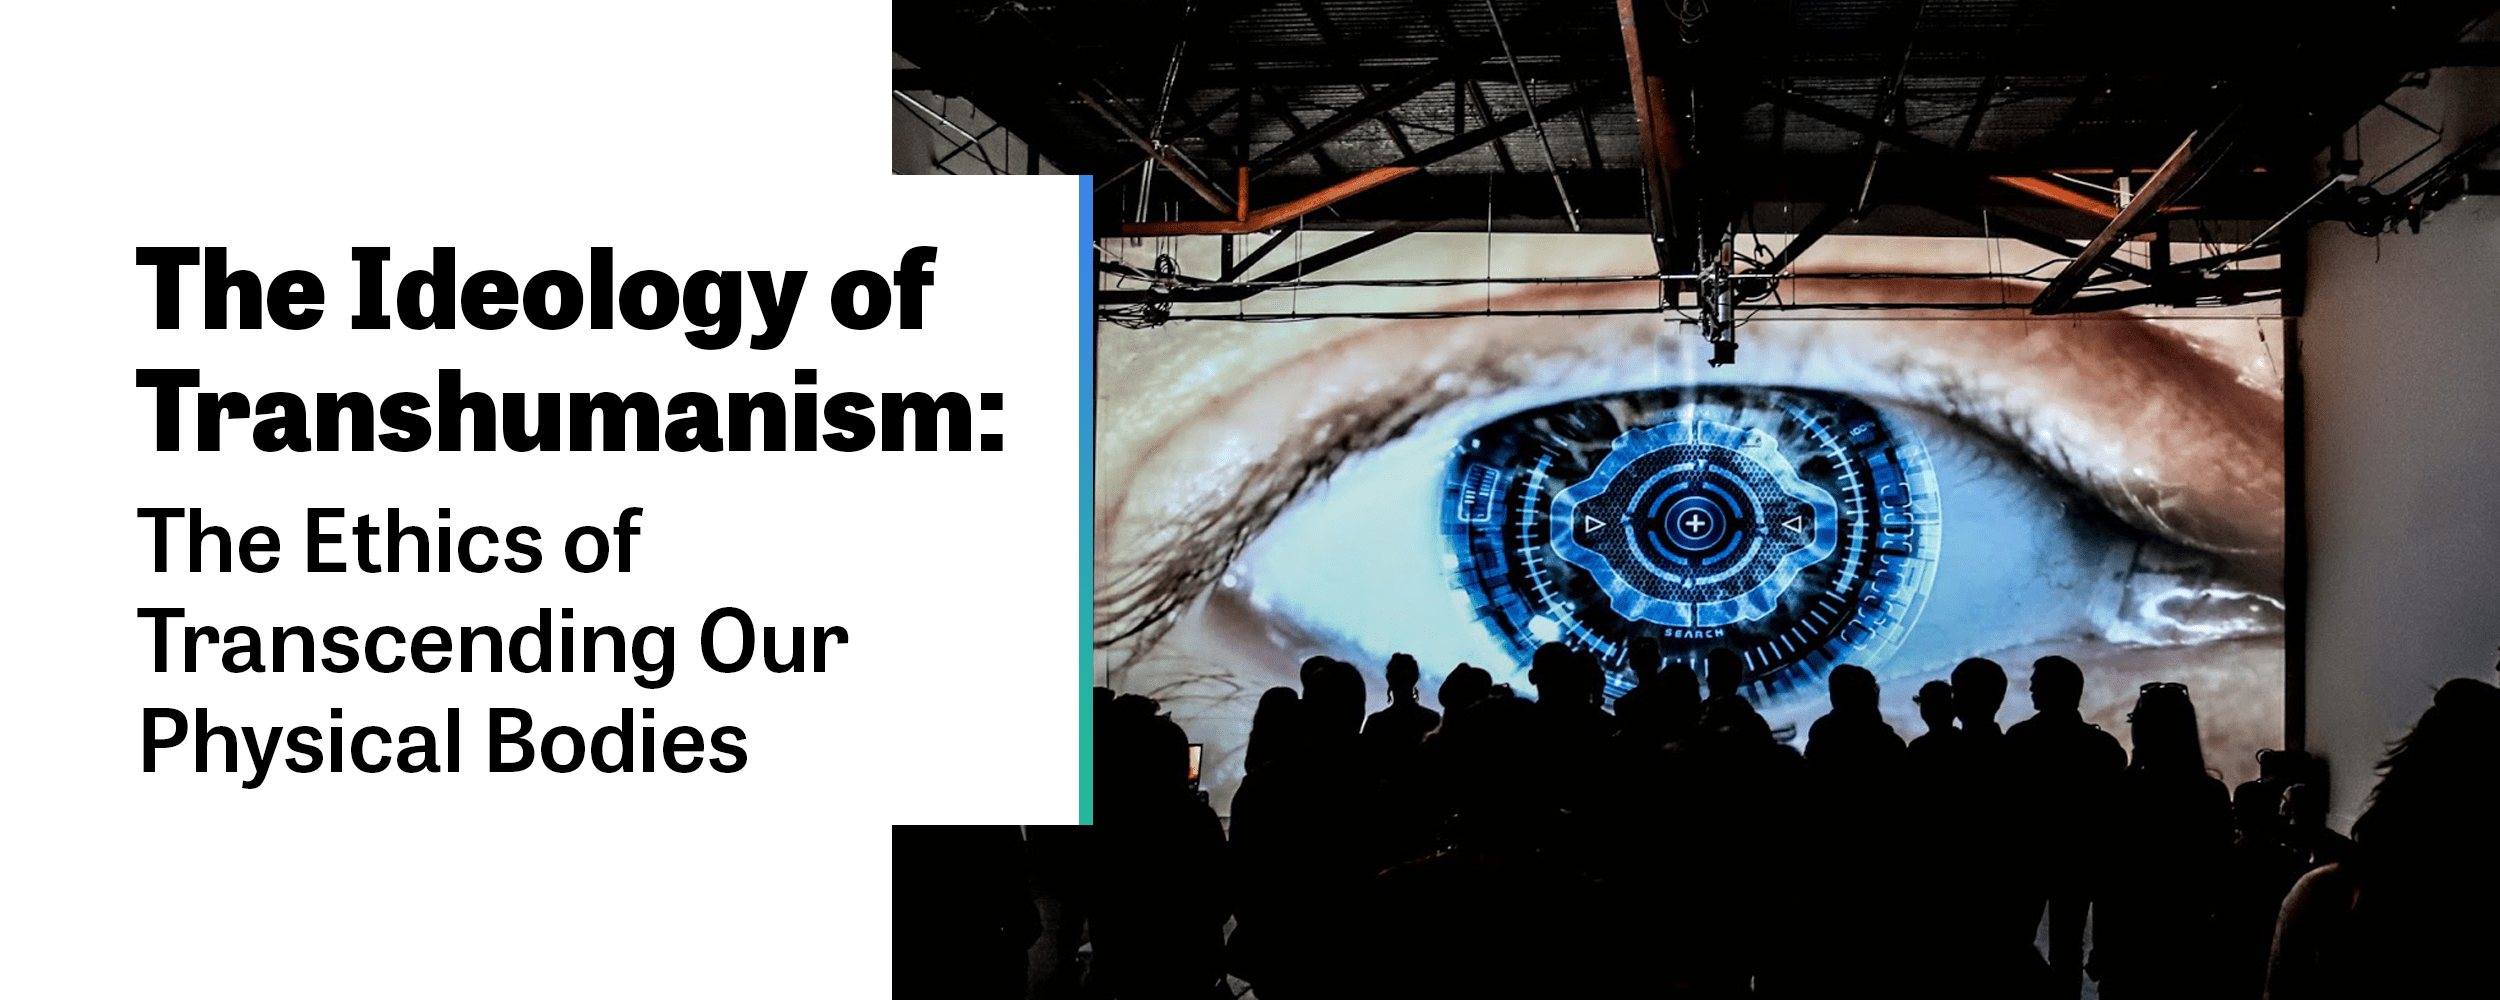 The Ideology of Transhumanism: The Ethics of Transcending Our Physical  Bodies - The New Modality